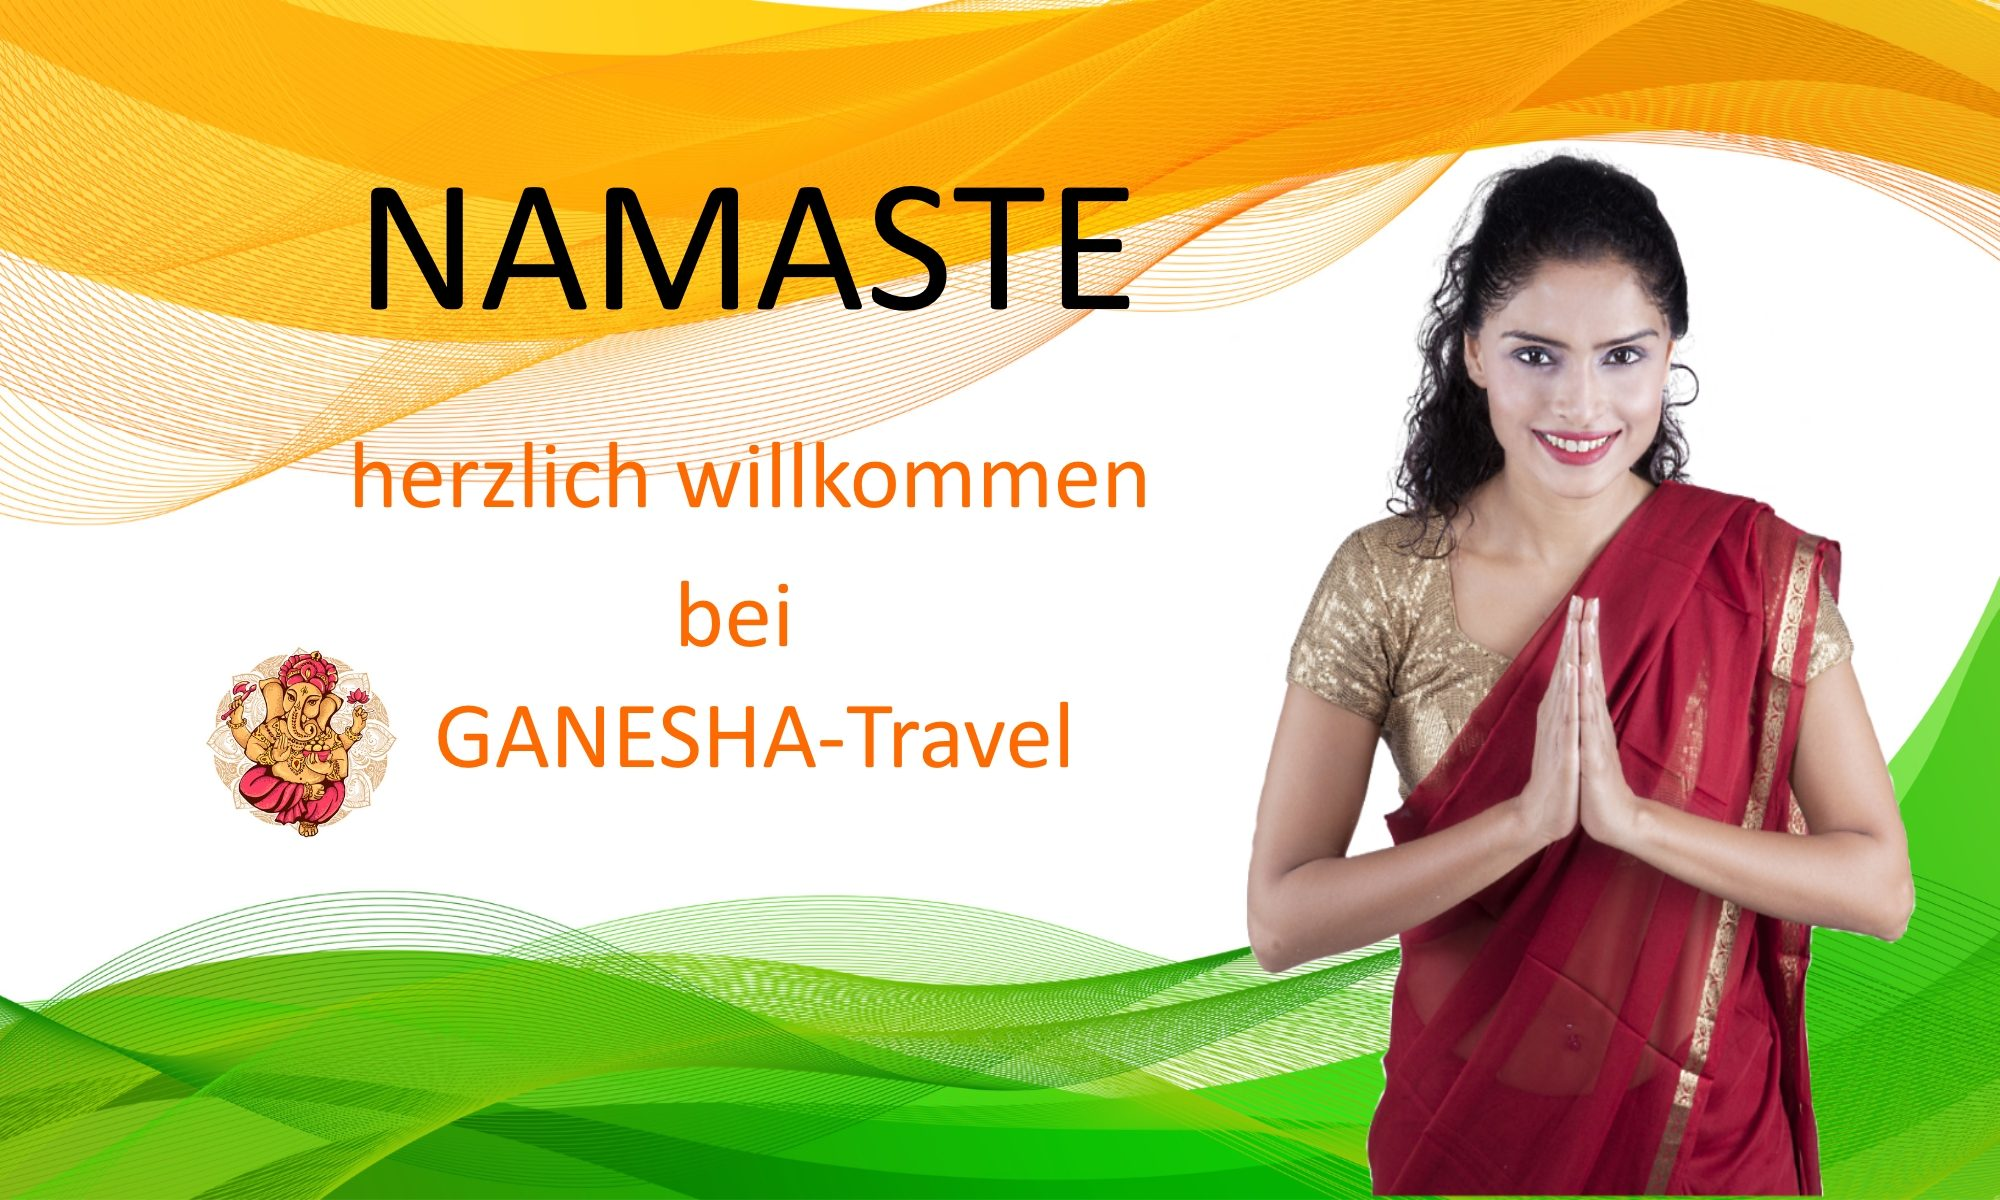 Ganesha-Travel Austria